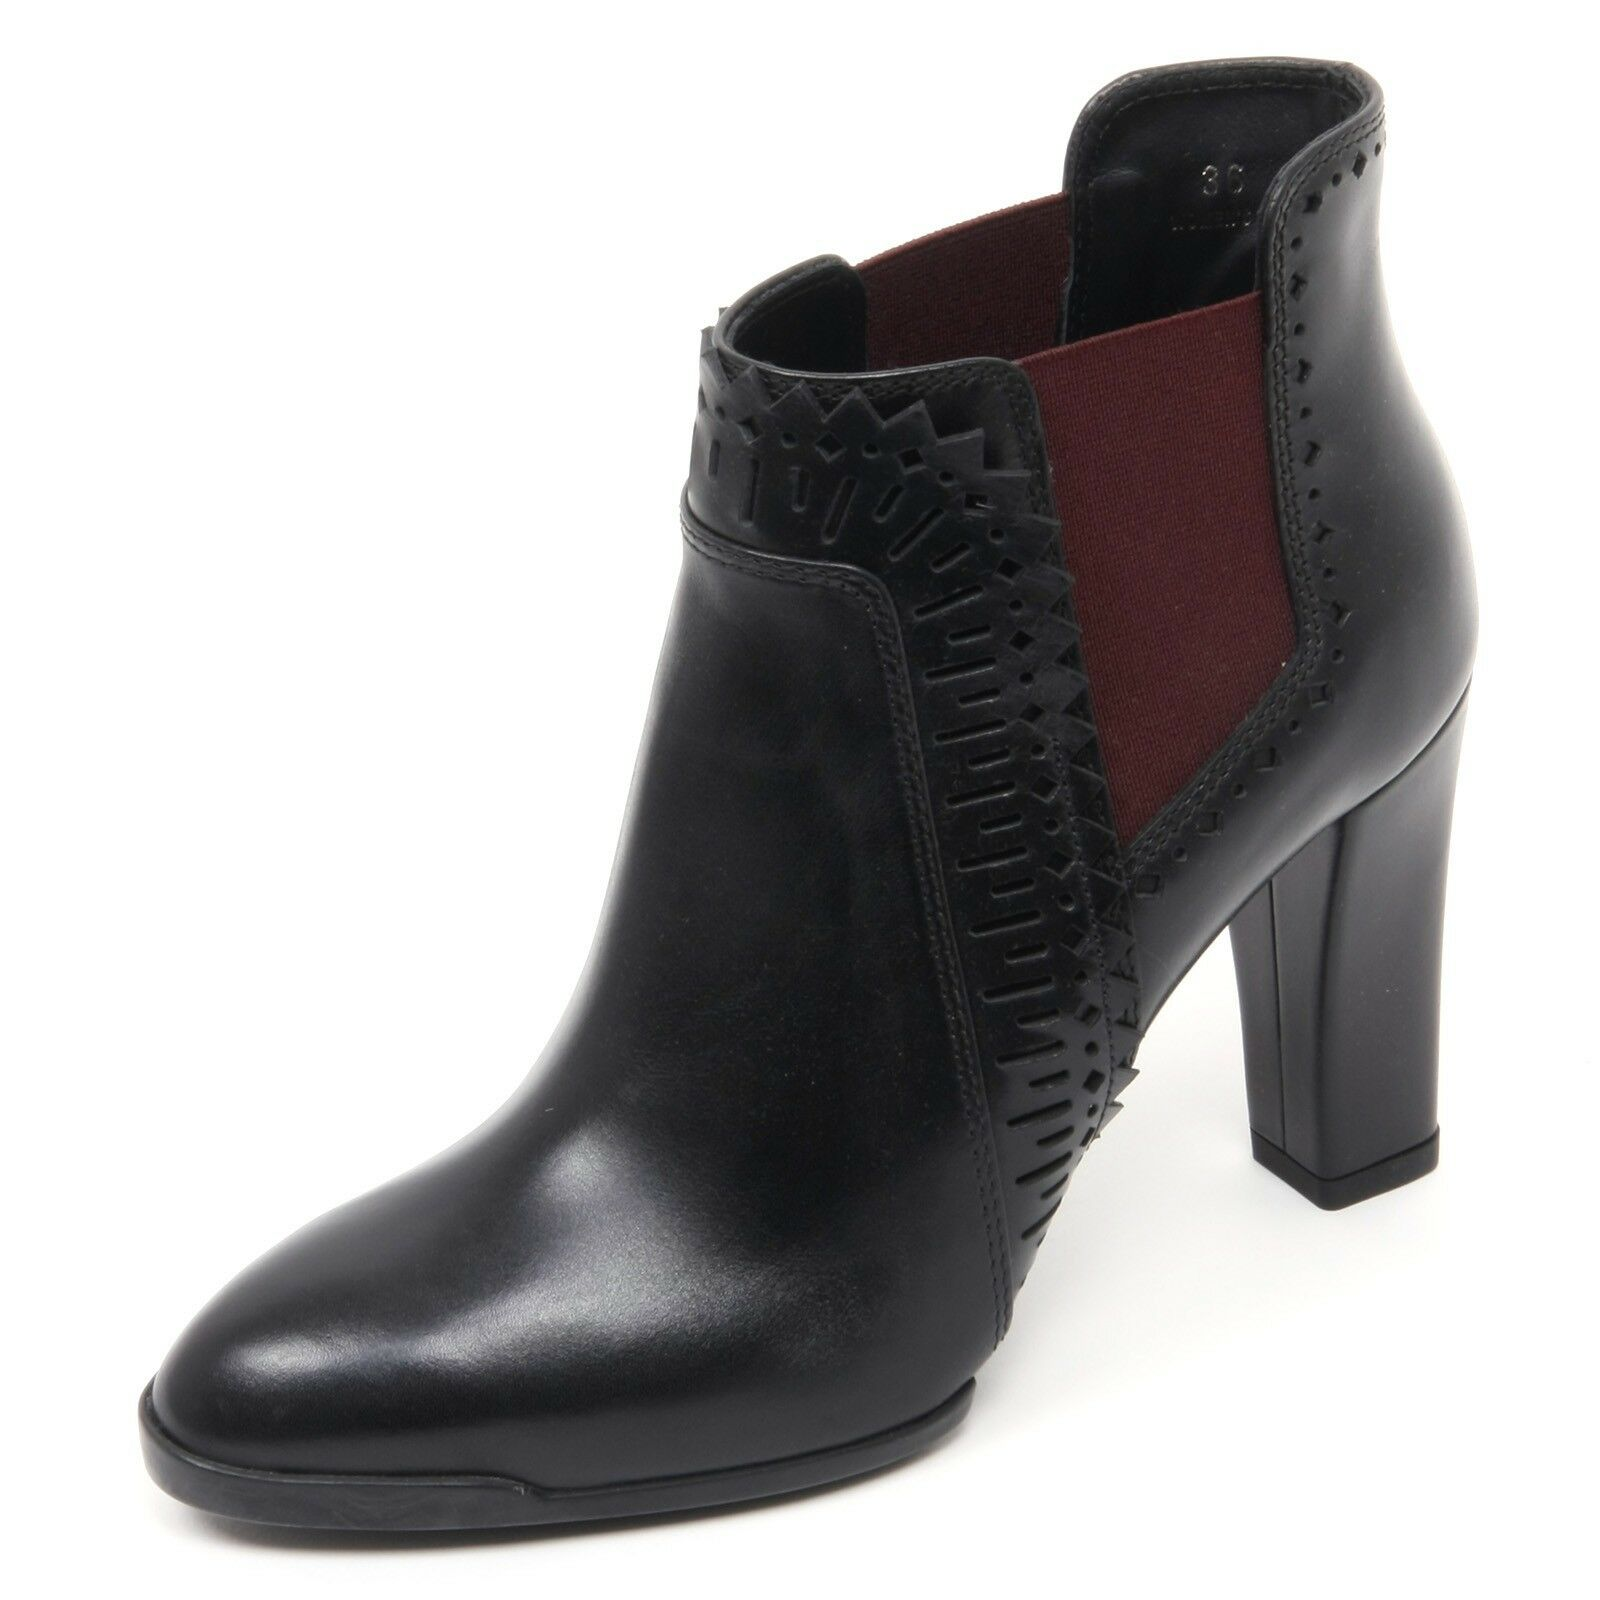 Grandes zapatos con descuento B8343 tronchetto donna TOD'S T95 scarpa nero/bordeaux boot shoe woman